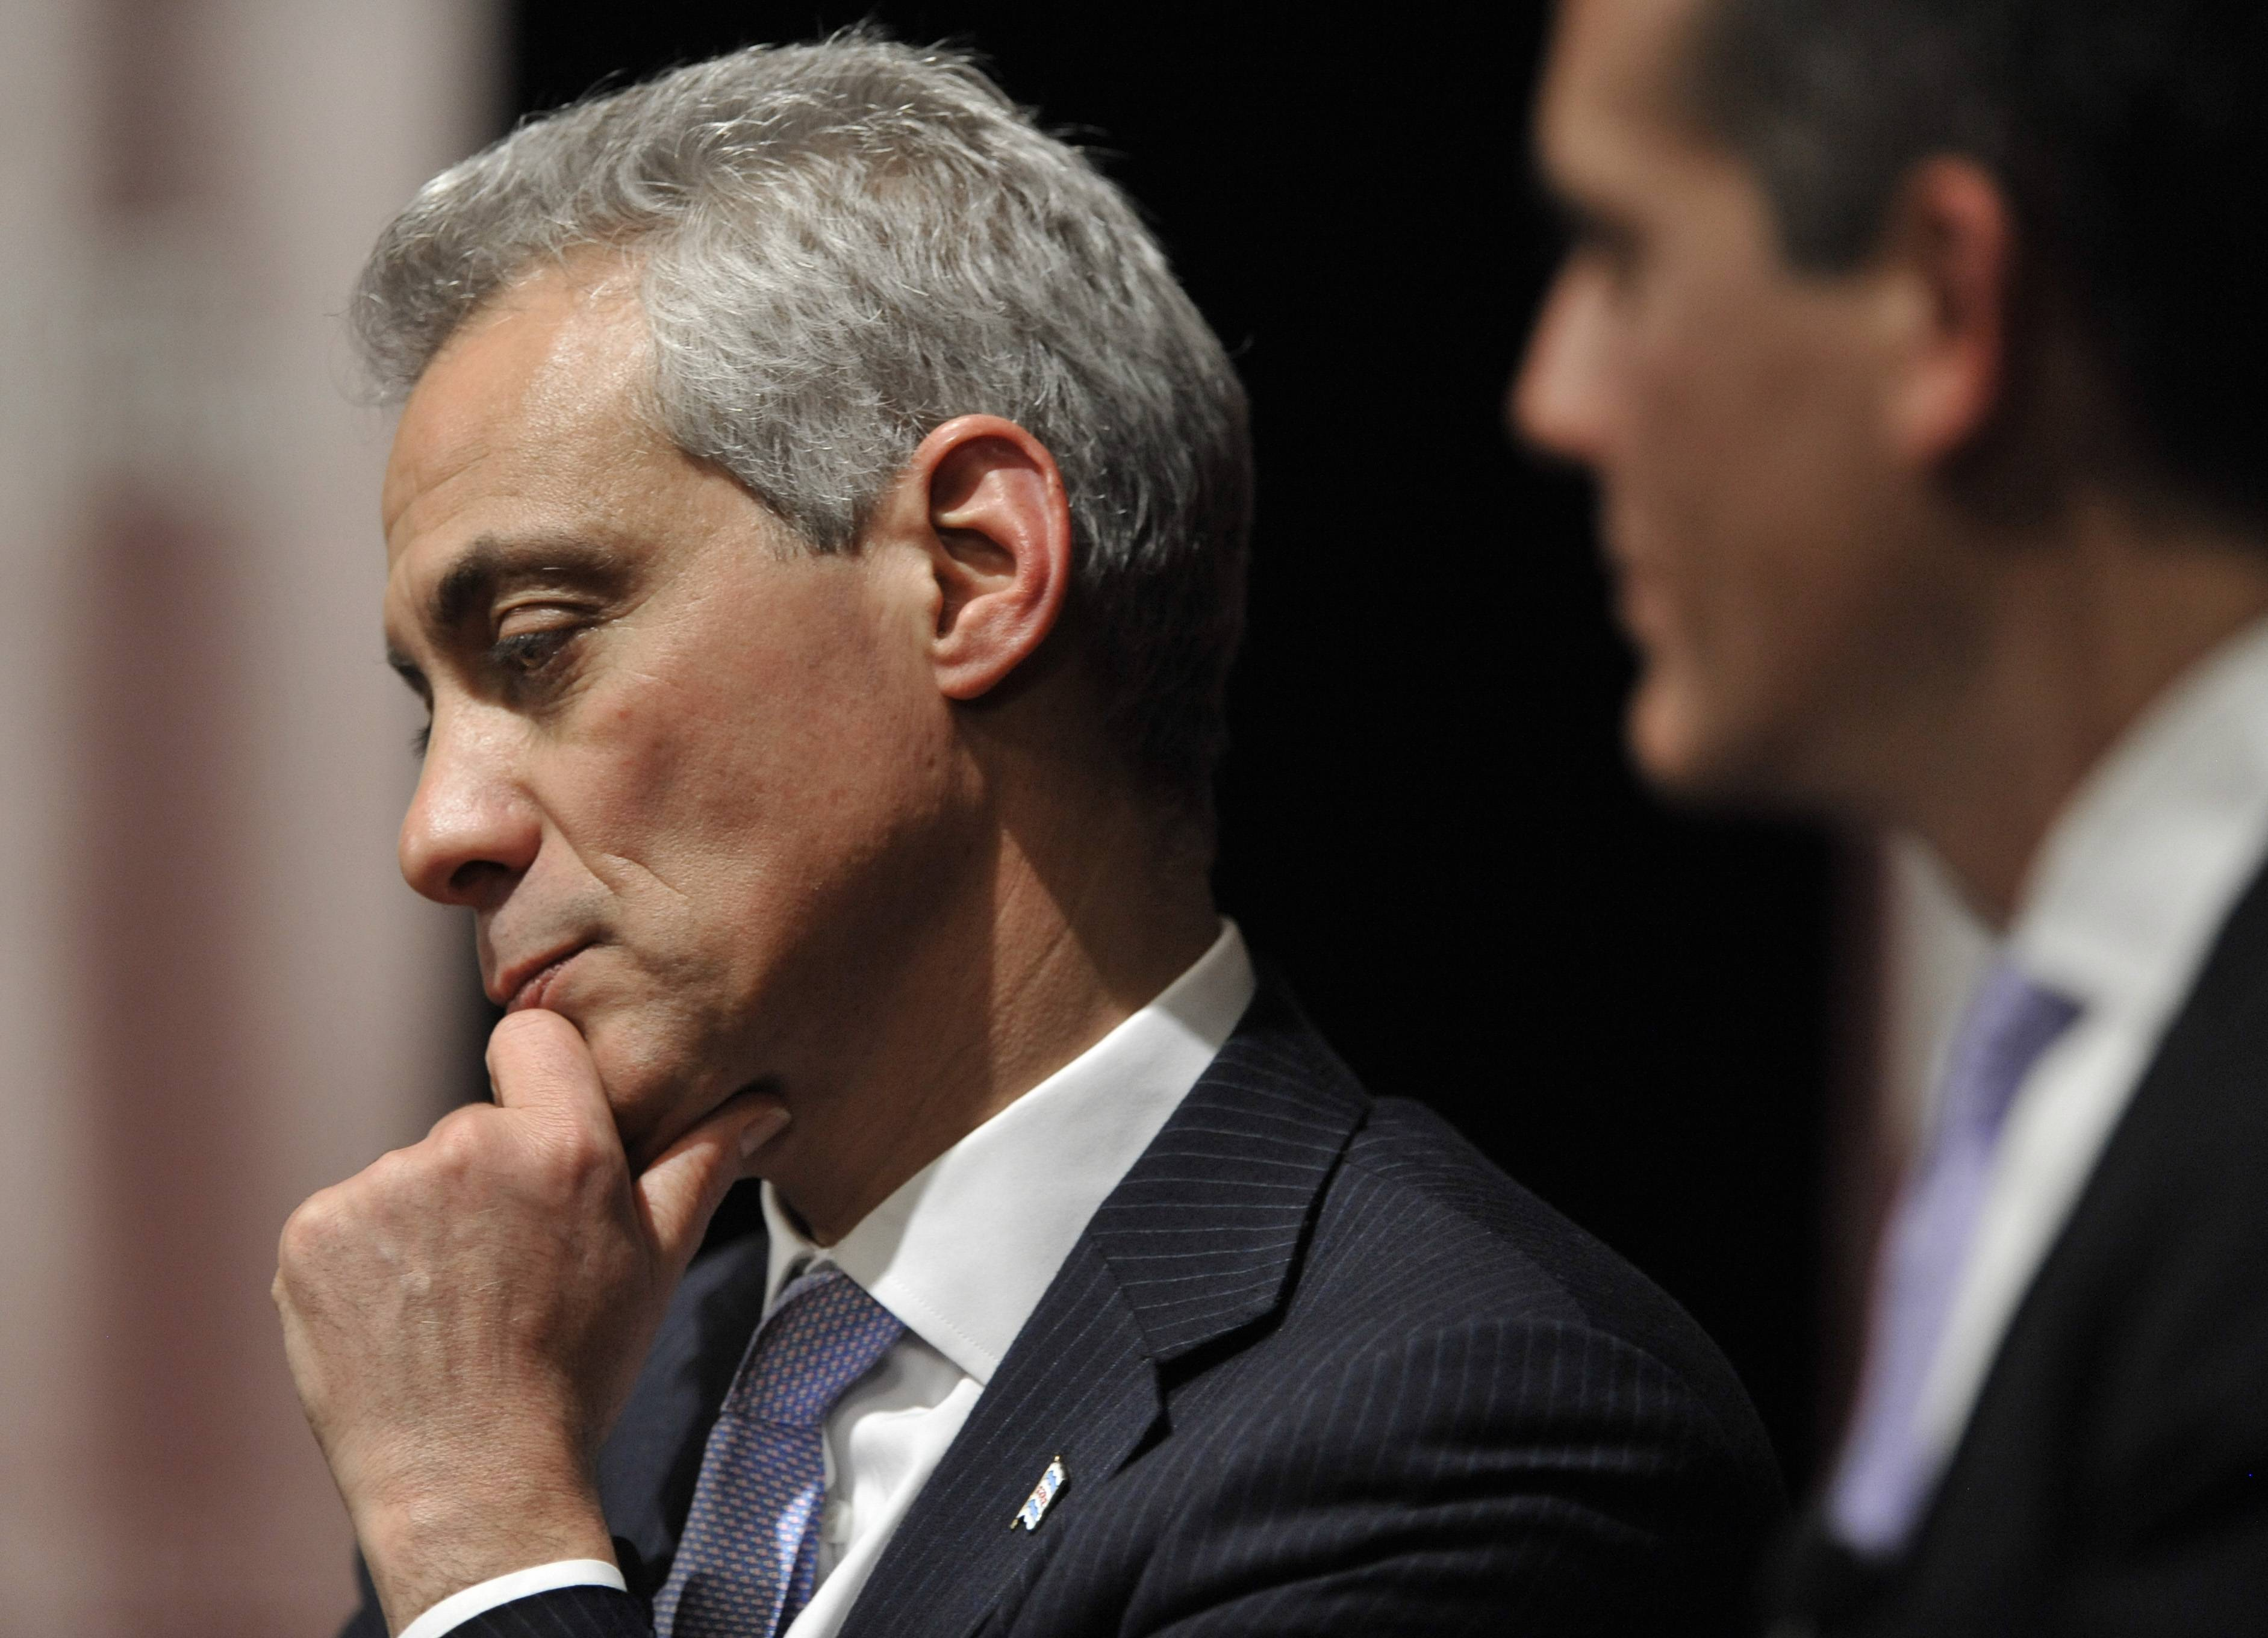 Chicago Mayor Rahm Emanuel, left, and Los Angeles Mayor Eric Garcetti listen during a March panel discussion about the issues facing the nation's big cities at the University of Chicago.